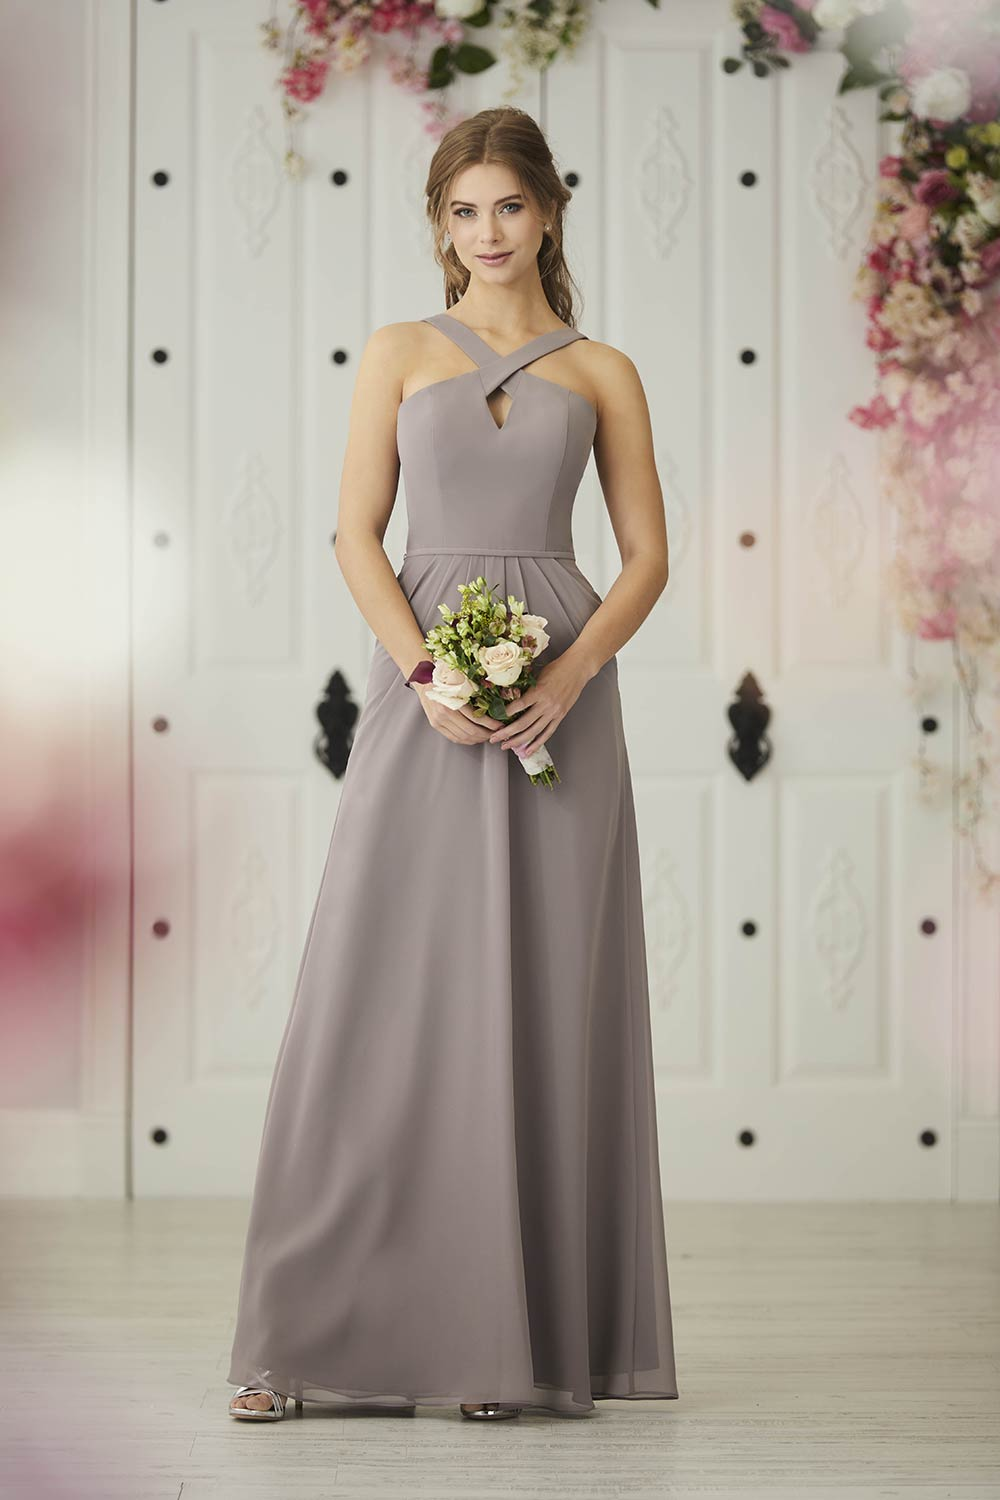 bridesmaid-dresses-jacquelin-bridals-canada-27294